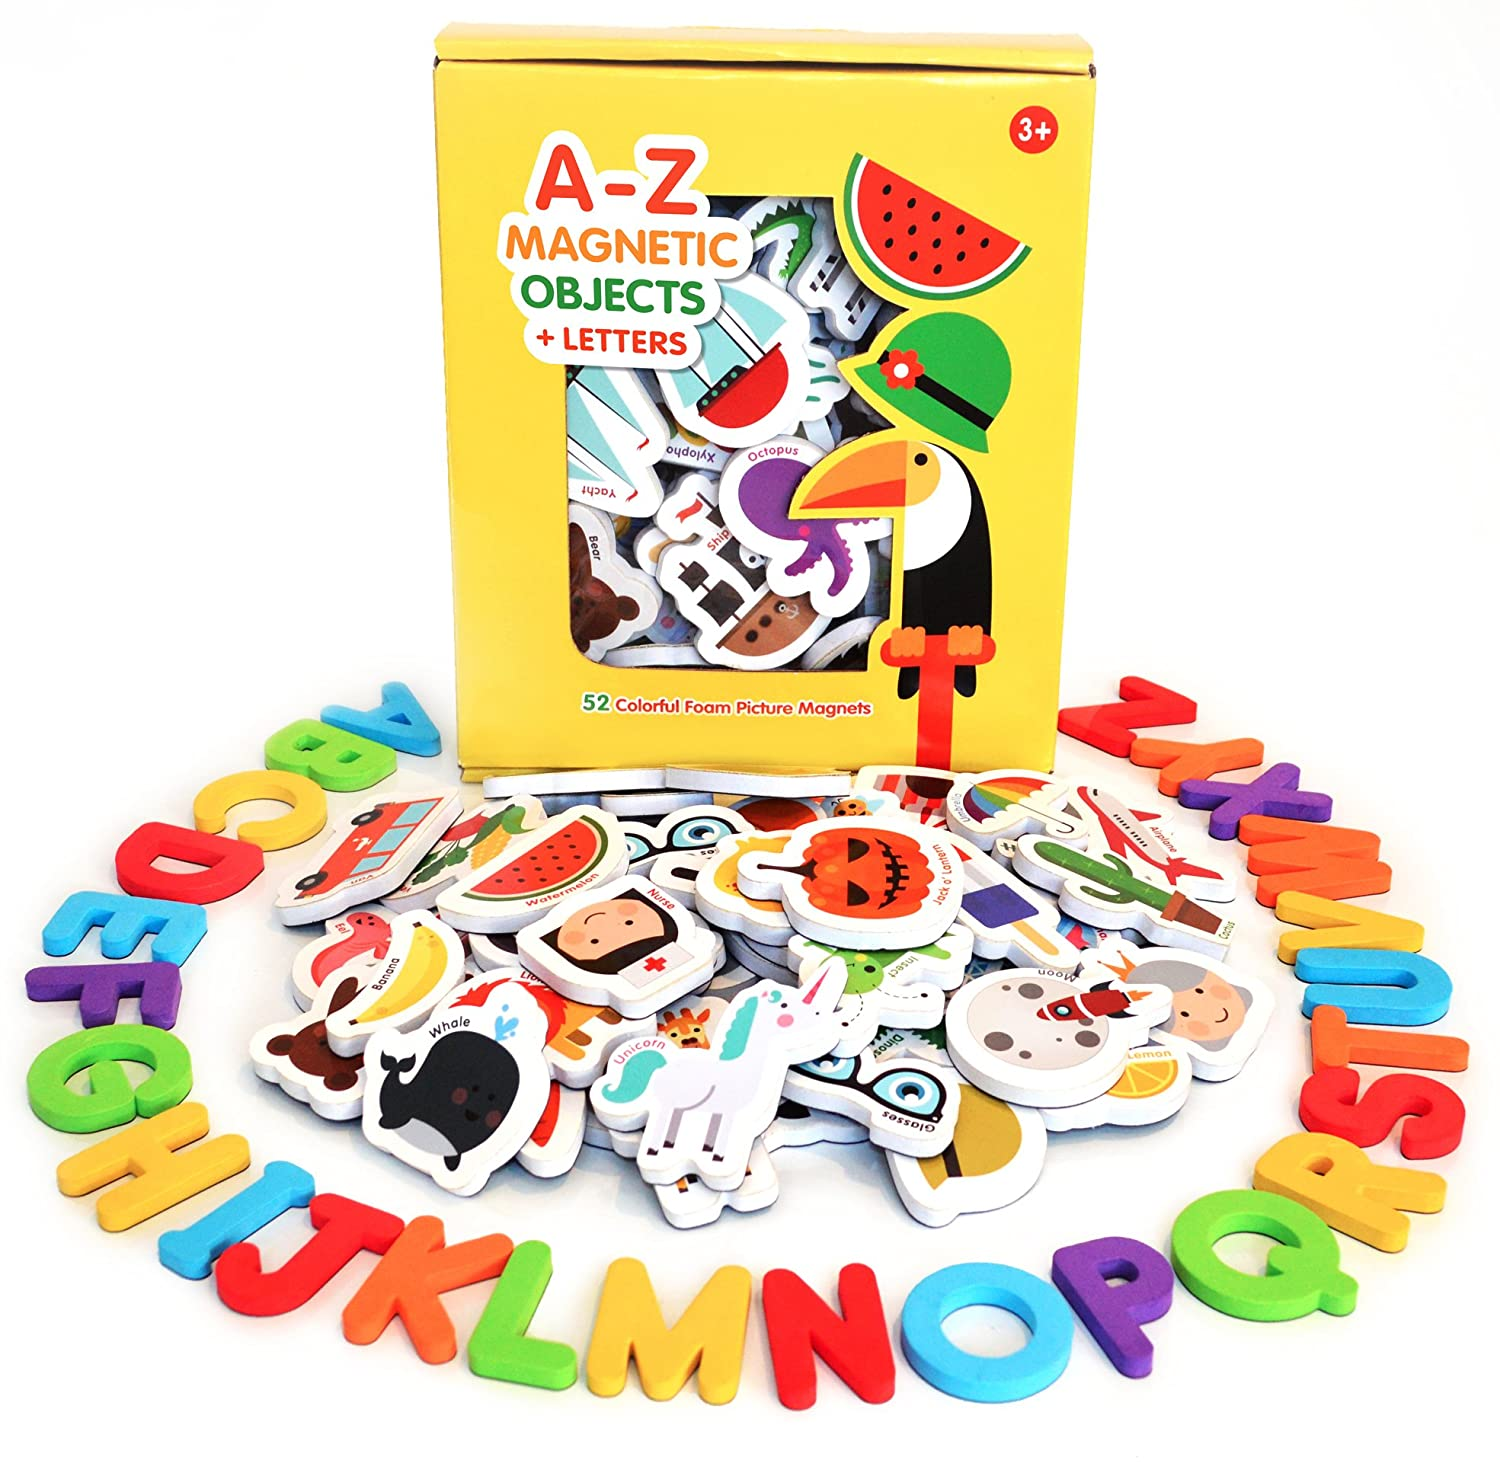 Curious Columbus Magnetic Objects and Letters. Set of 78 Foam Magnets Including 52 Pictures and 26 Uppercase Alphabet Magnets from A-Z. Best Educational Toy for Preschool Learning